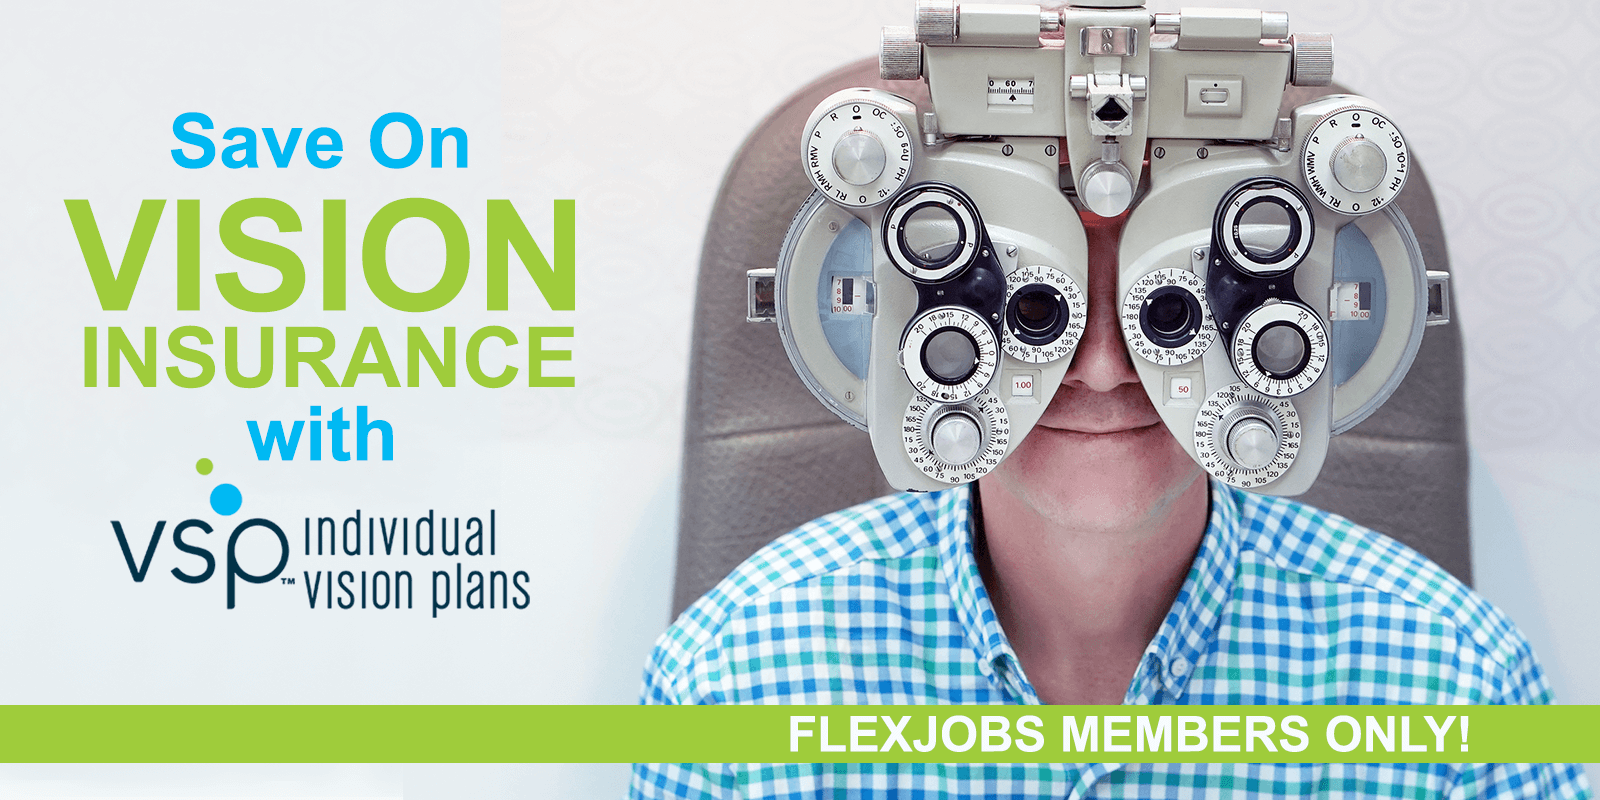 FlexJobs Members Save on Vision Insurance with VSP   FlexJobs